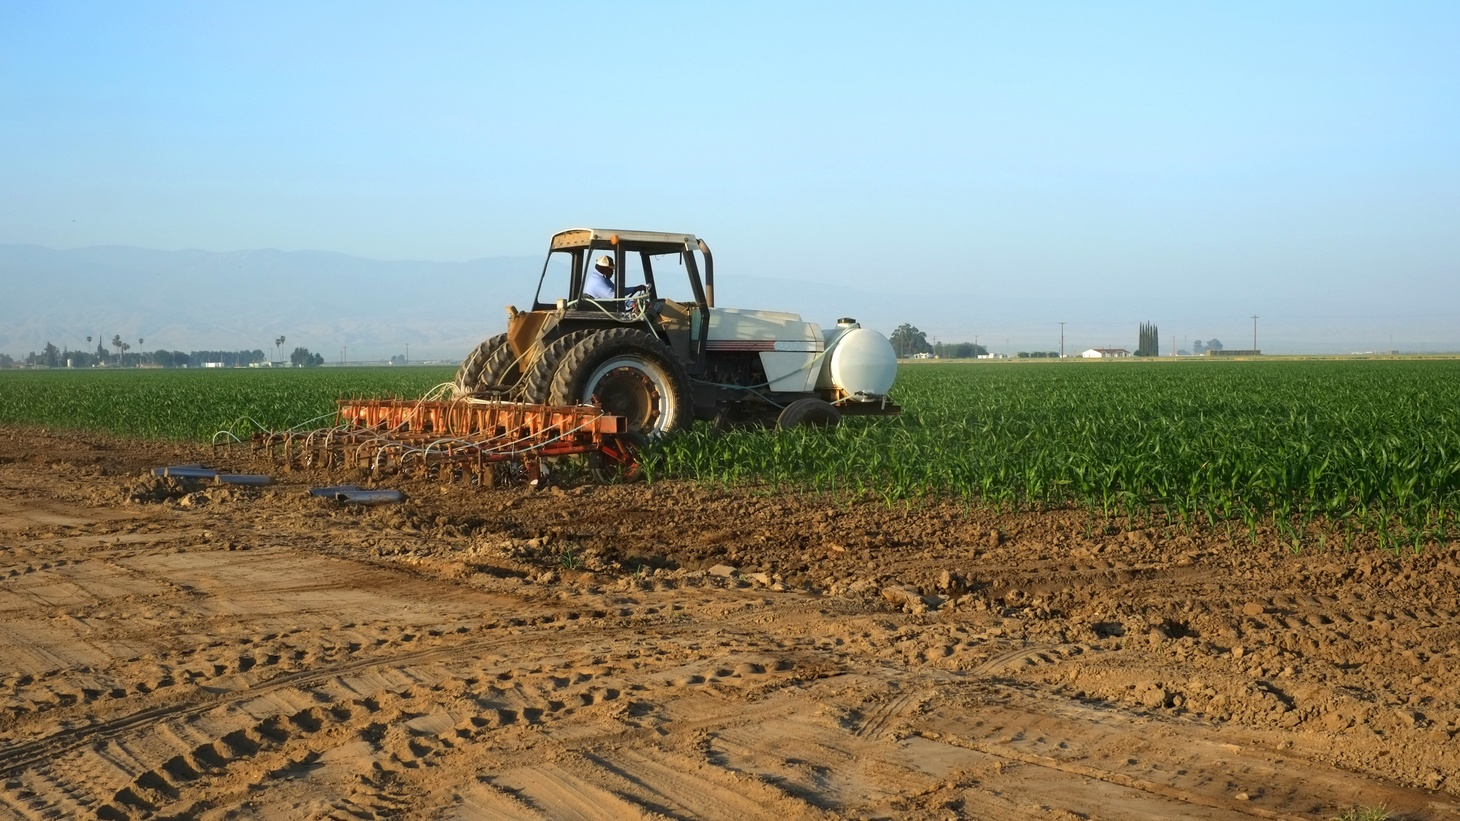 Drought is so severe in California that Central Valley farmers must cut their water use.